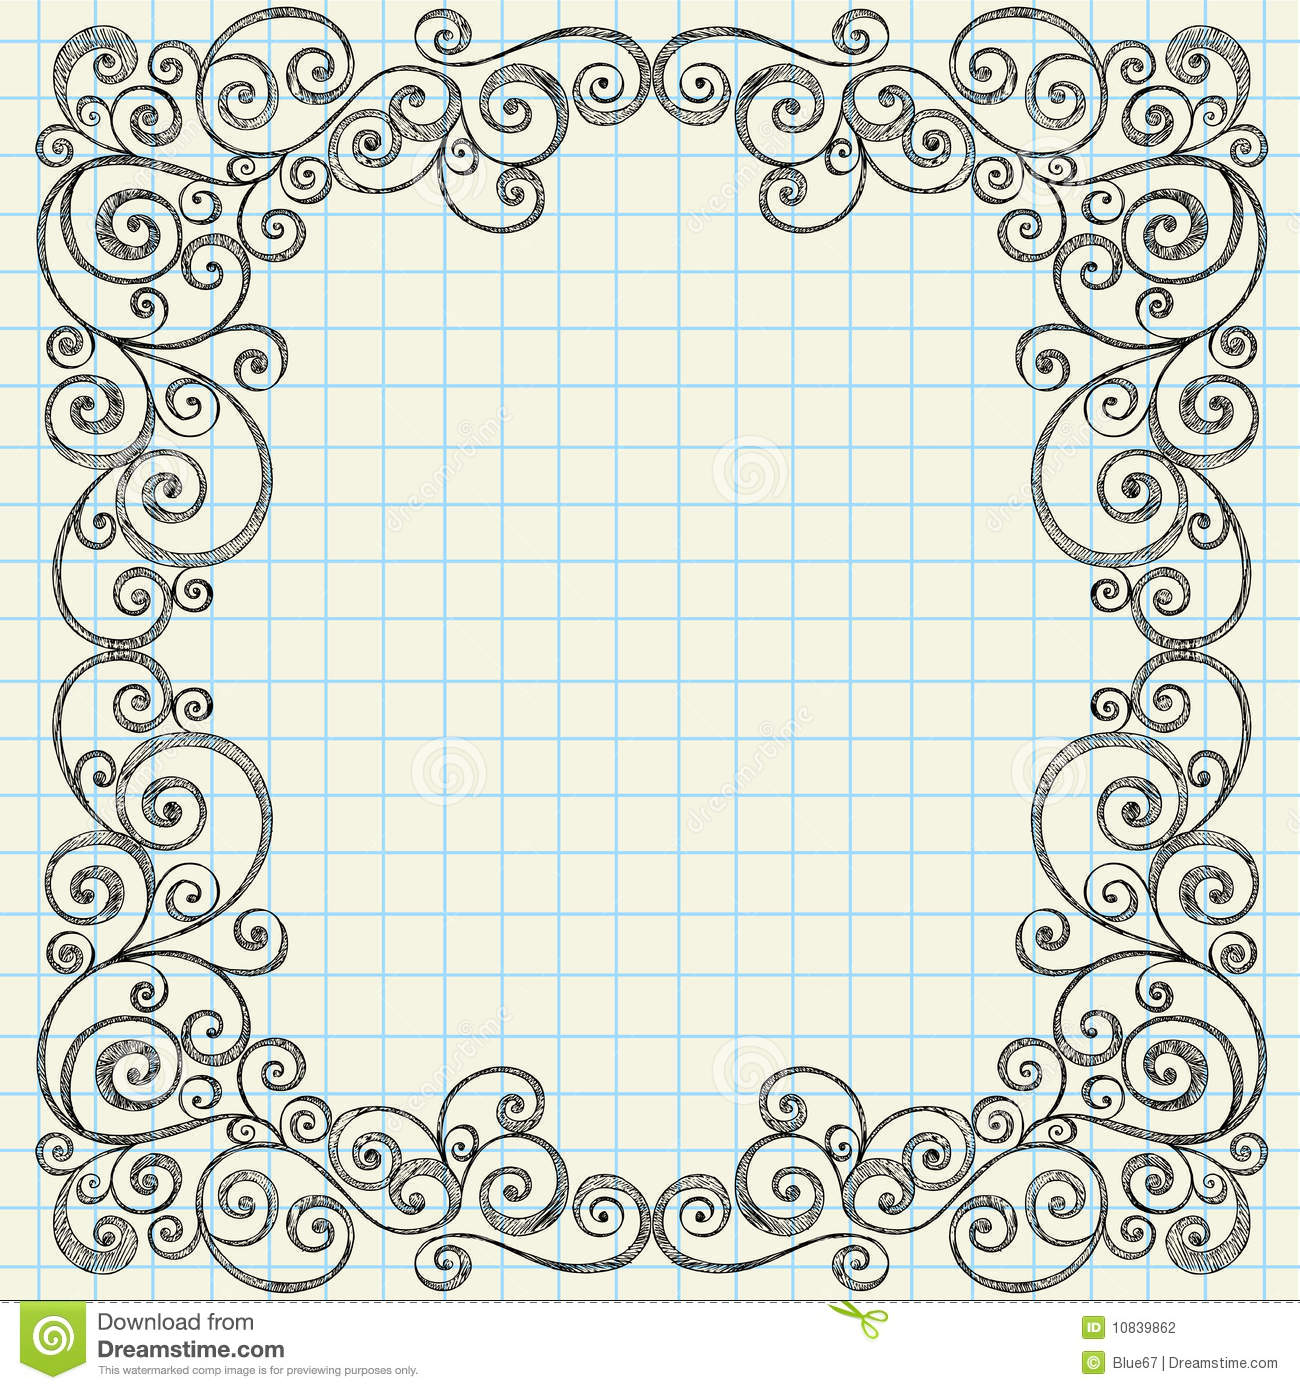 Cute Border Designs To Draw On Paper Easy Wallpapers Hand Drawn ...